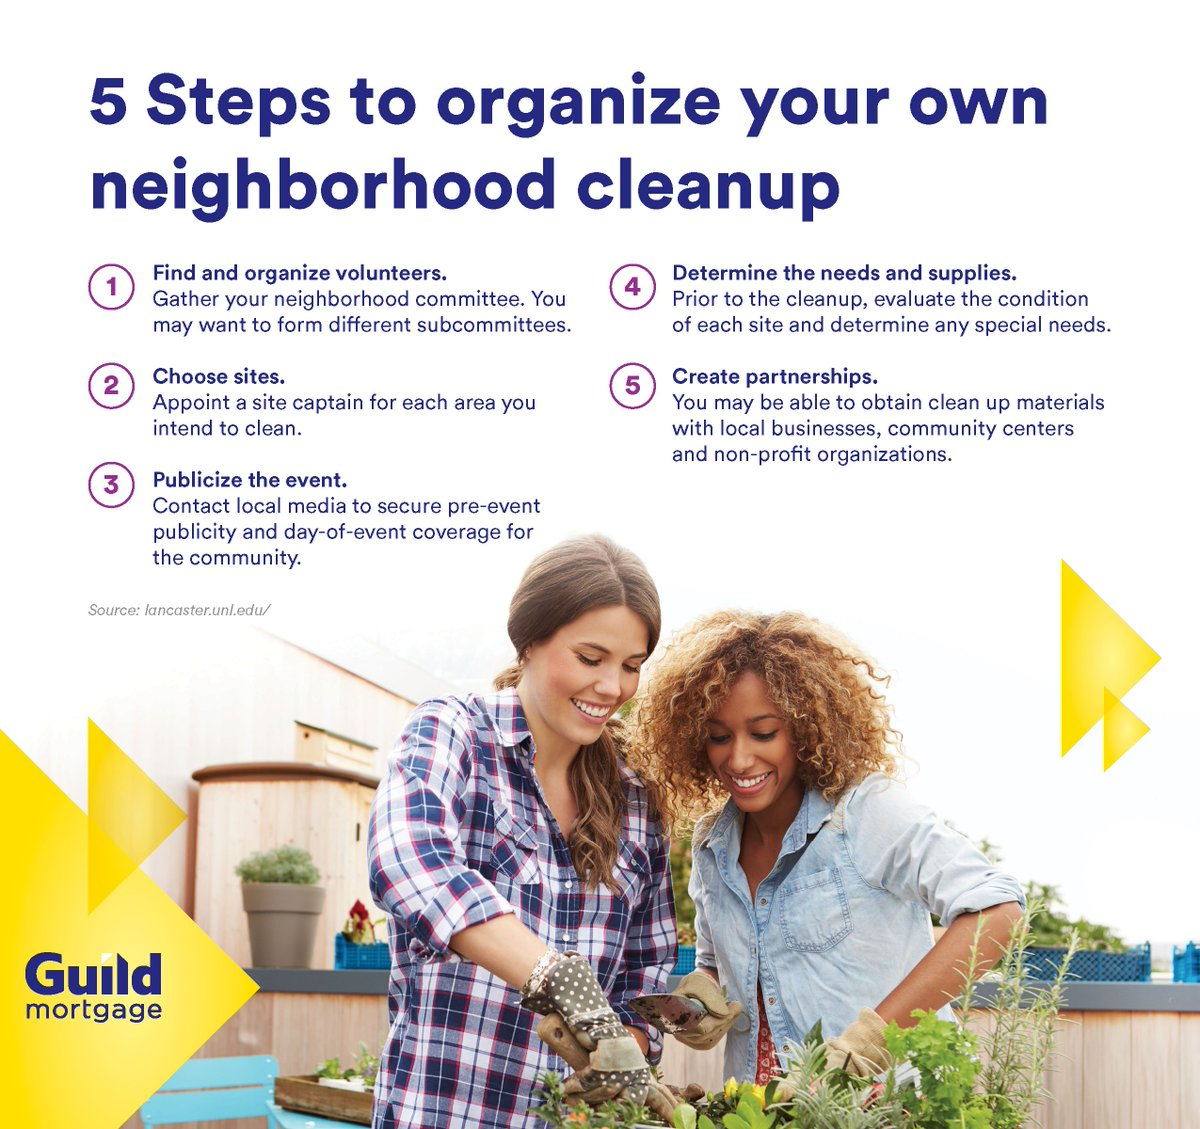 10 Special Needs Organizations You >> Guild Mortgage On Twitter Neighborhood Cleanups Make A Difference